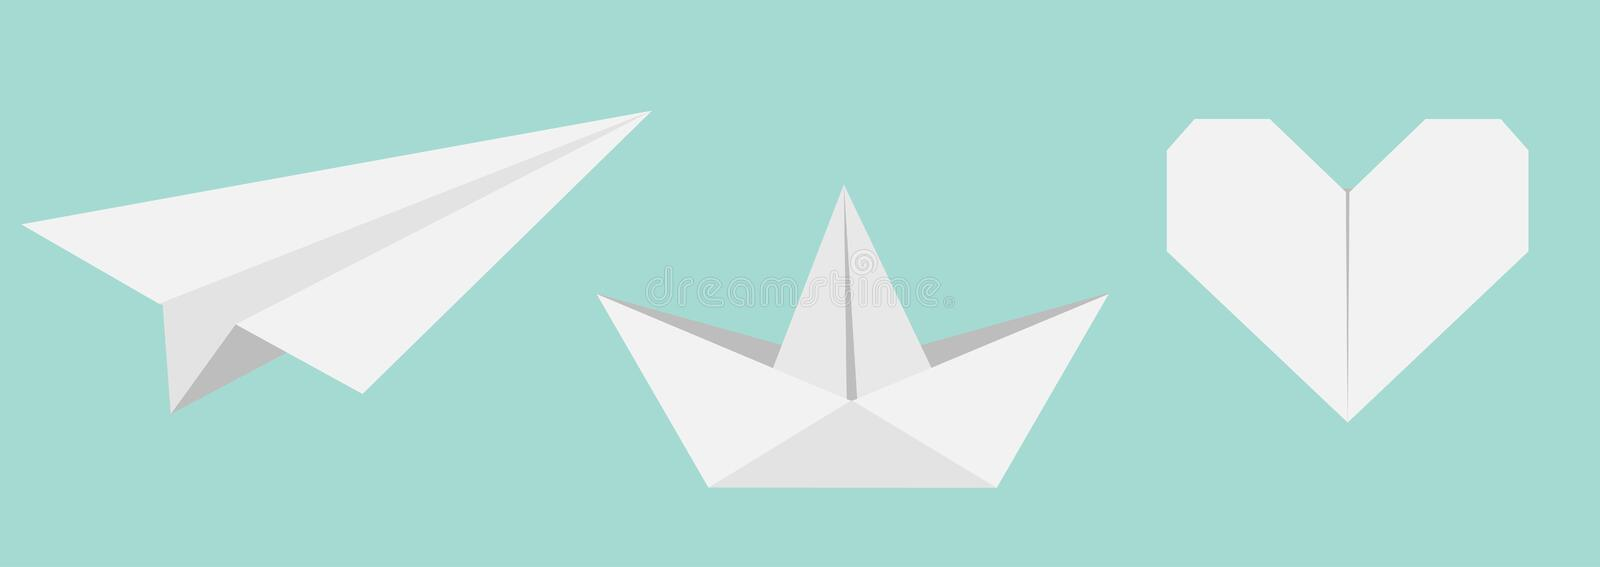 Origami paper plane, boat ship, heart icon set. Gray color. Handmade toy line. Flat design. Cute love symbol. Blue background. Isolated. Vector illustration vector illustration